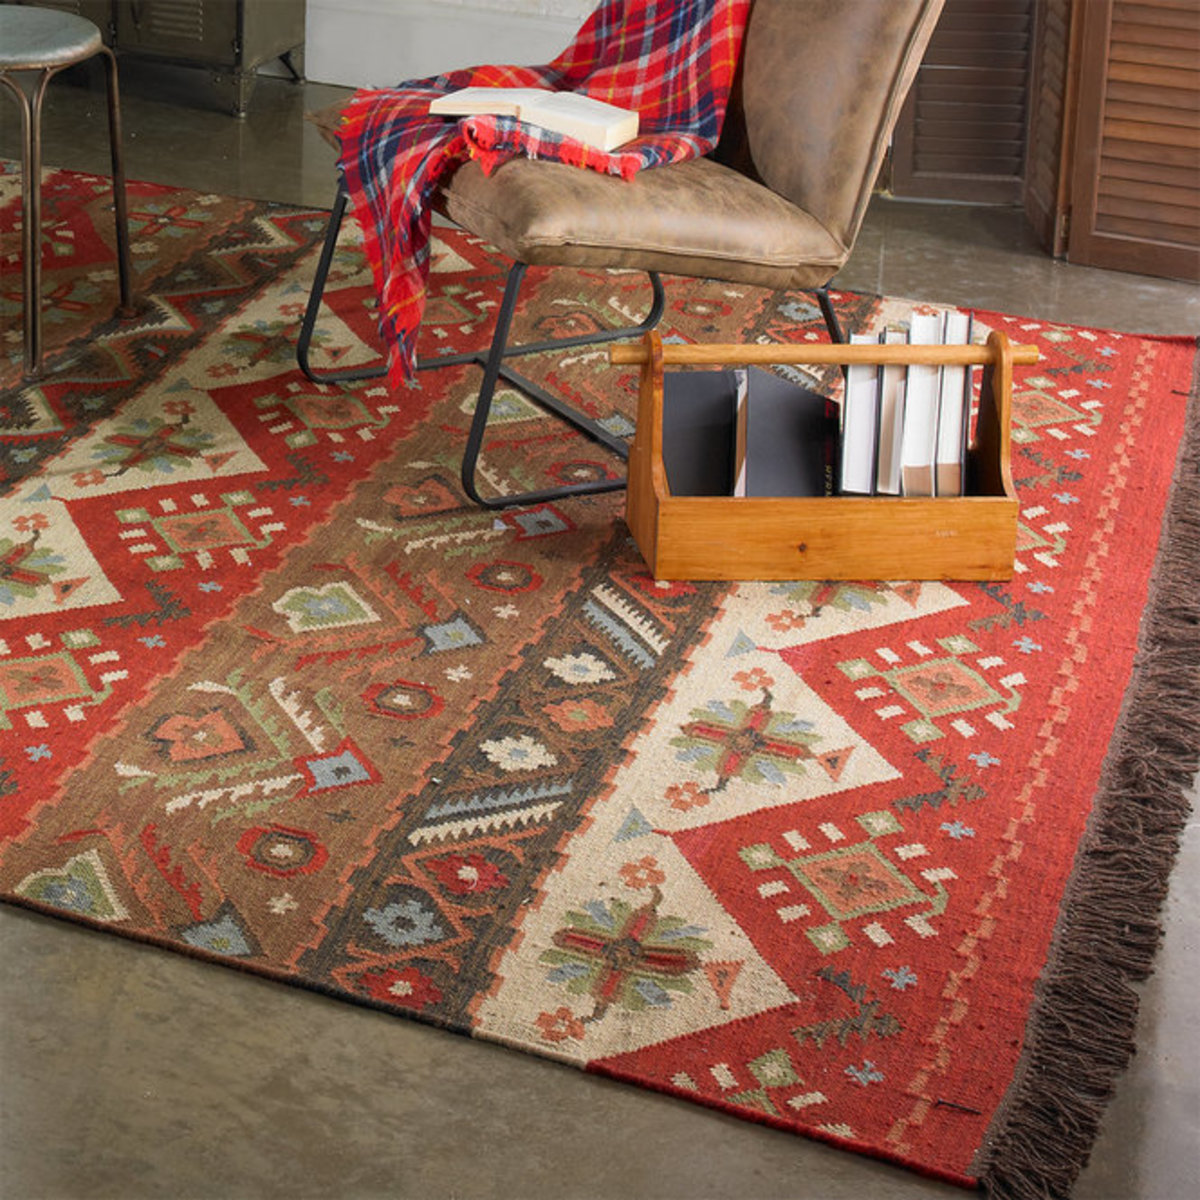 Flat-weave rugs are made on looms, similar to woven fabrics.